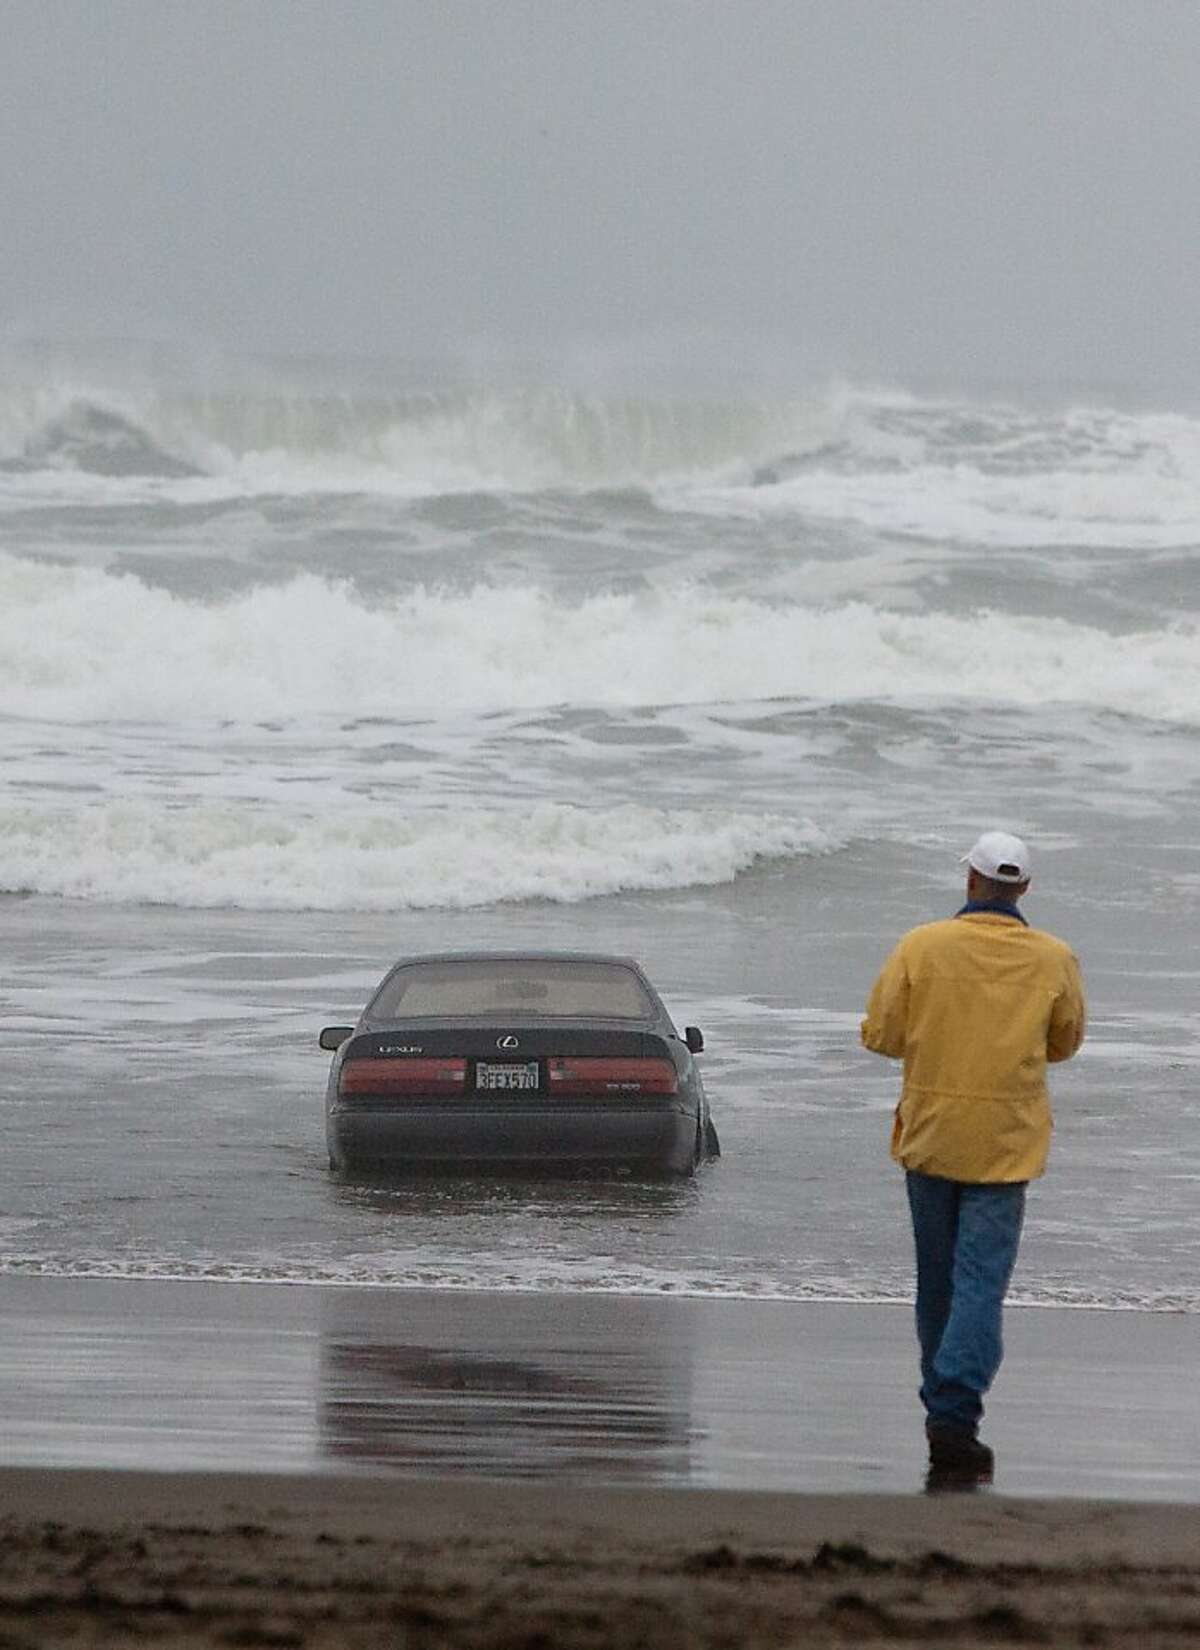 People view a Lexus car stuck in the waves along San Francisco's Ocean Beach on Friday morning, Feb. 10, 2012. A woman suffered minor injuries this morning when she drove her car into the water at San Francisco's Ocean Beach, a fire dispatcher said.